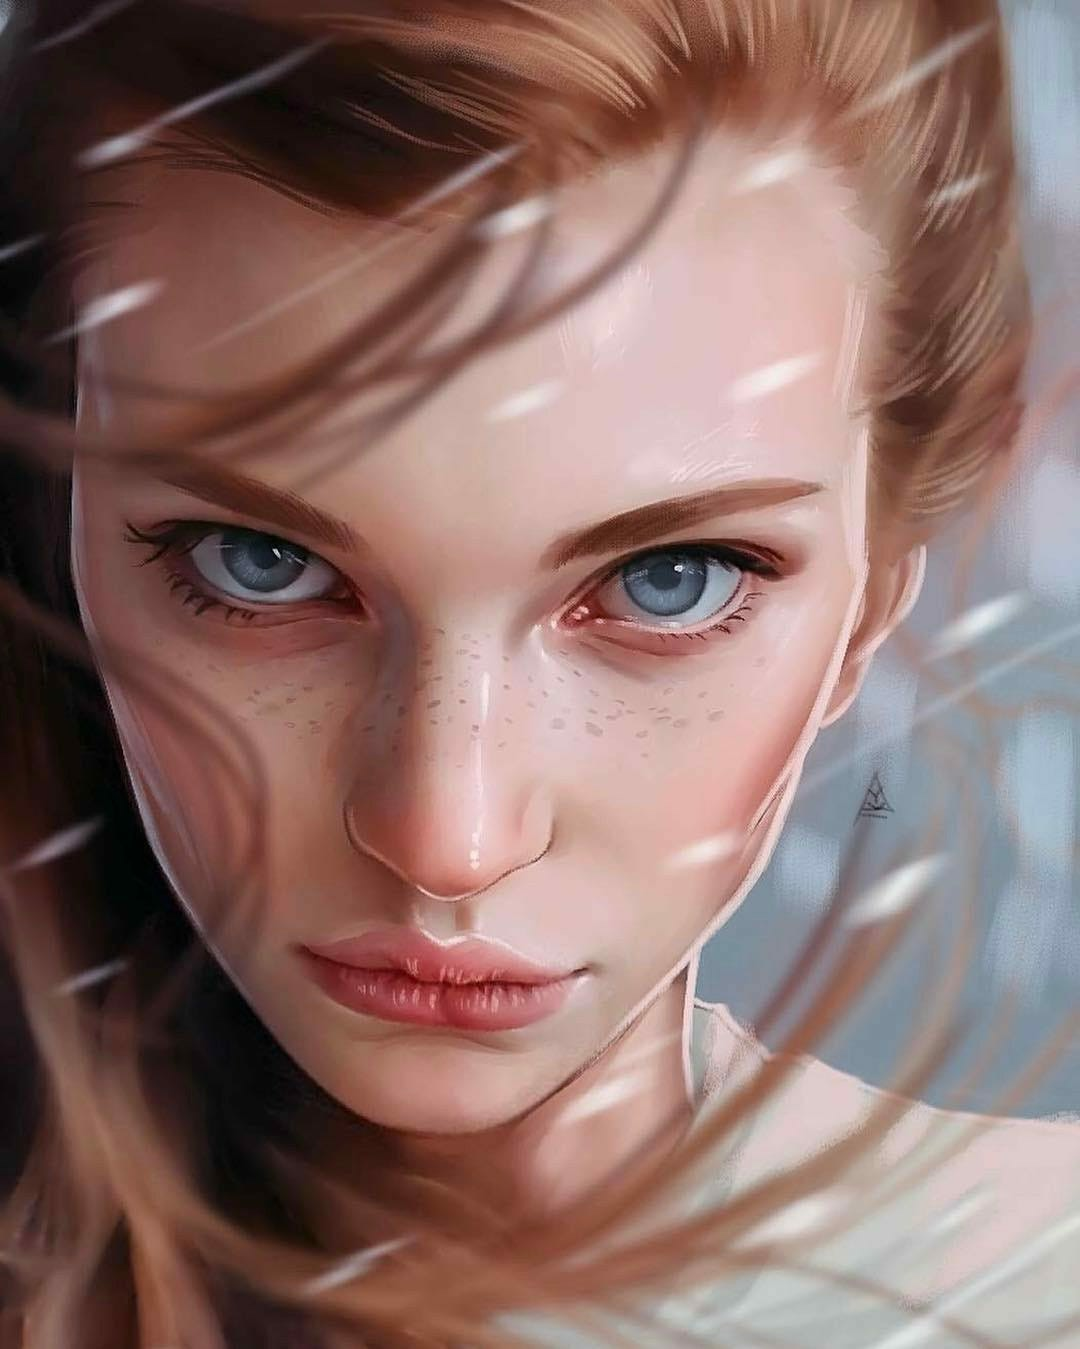 Inspirational Digital Painting of Anna Grekova, by Artist Aykut Aydoğdu